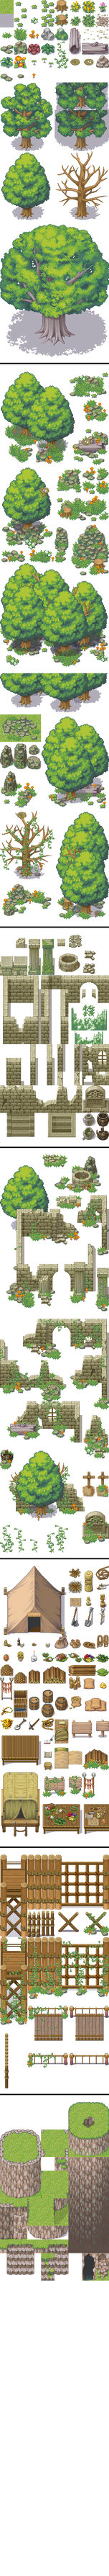 Tileset bosque expansion rtp - RPG Maker XP